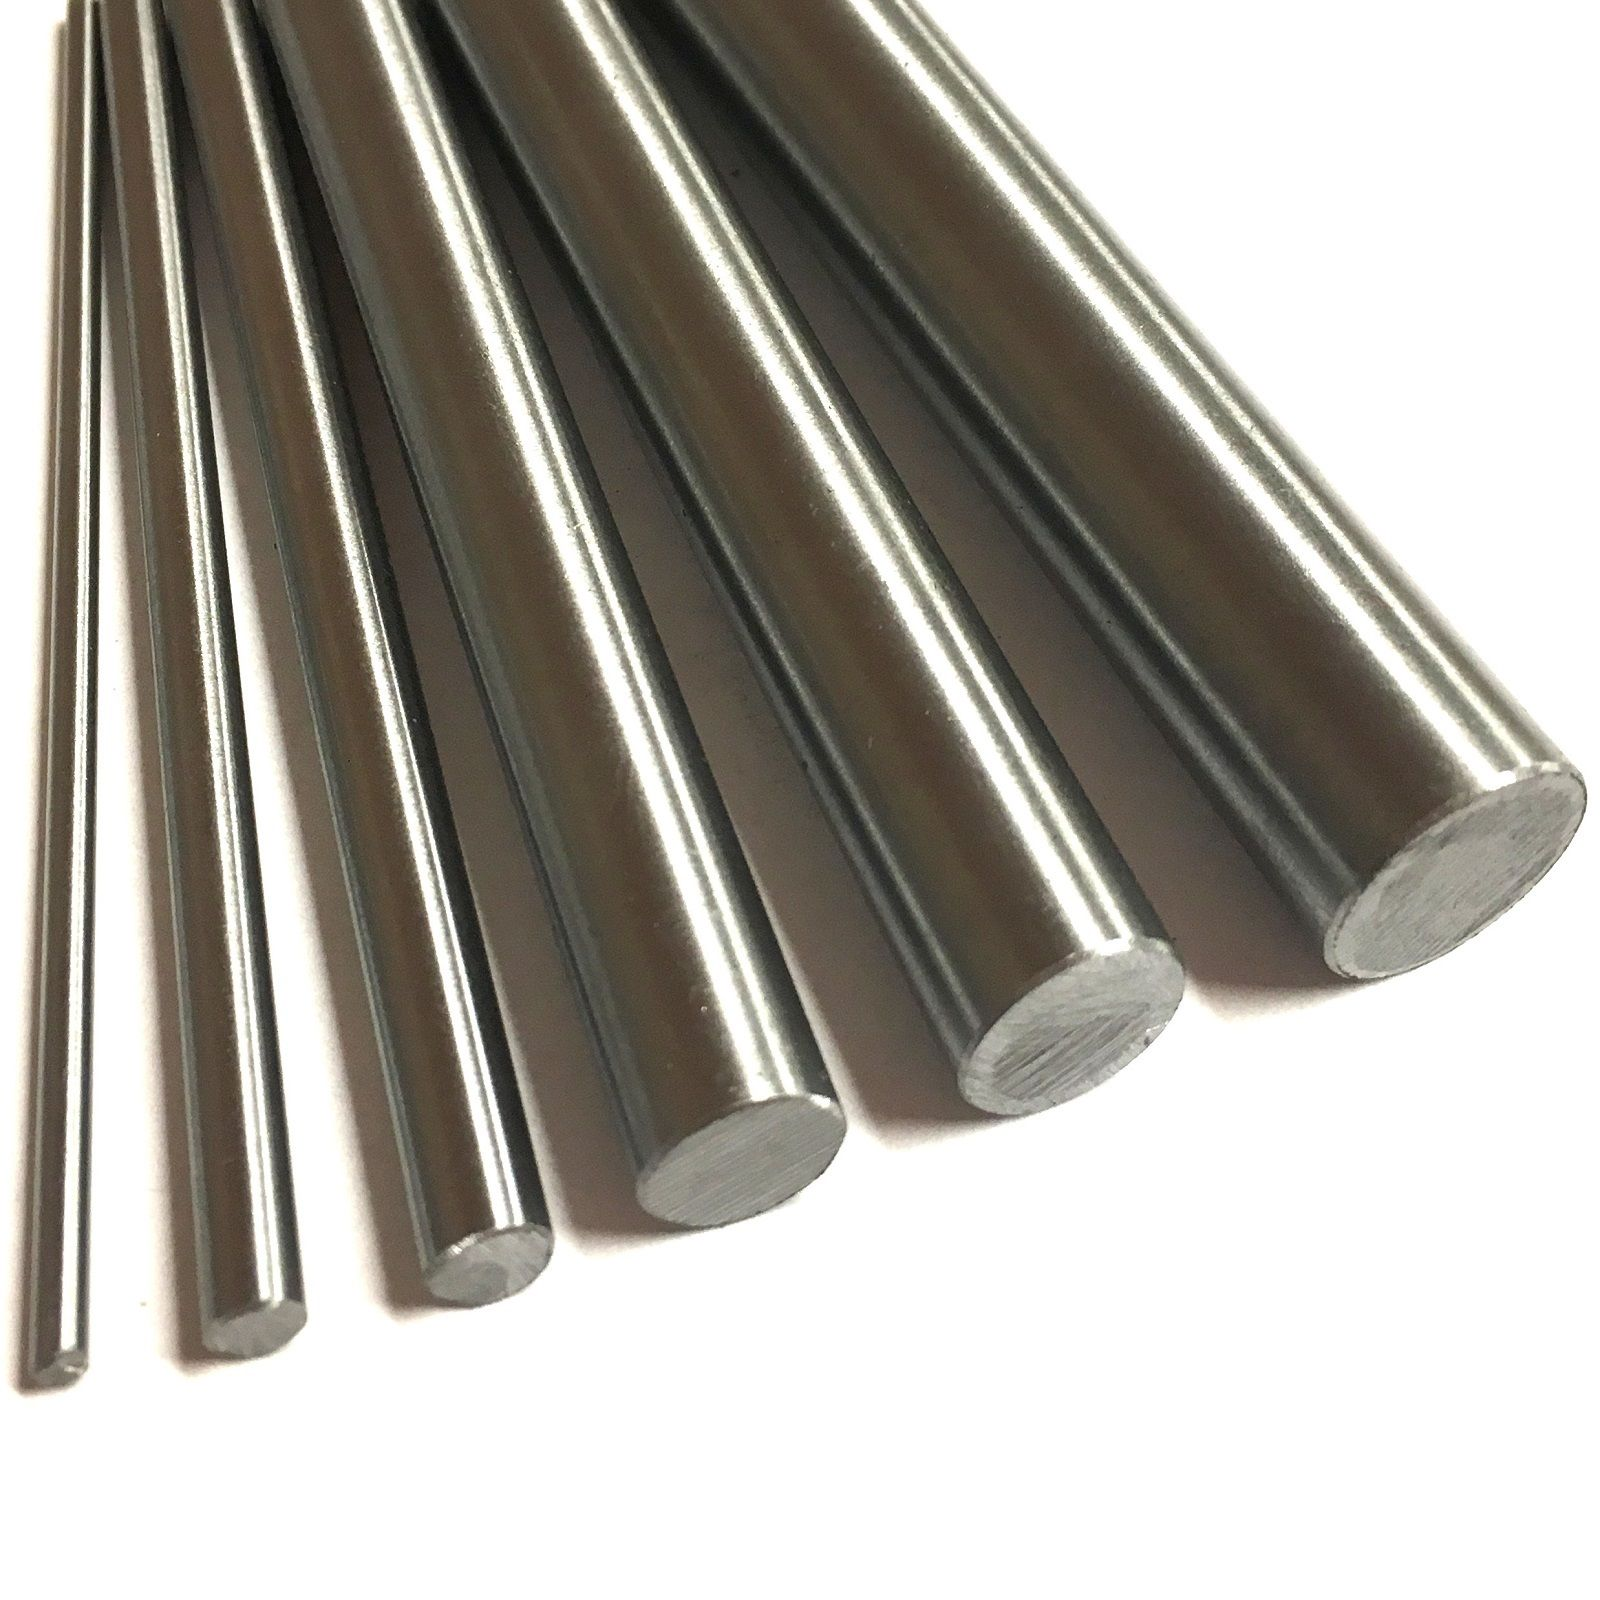 All Lengths 8mm Diameter Solid 316 Marine Stainless Round Bar rod